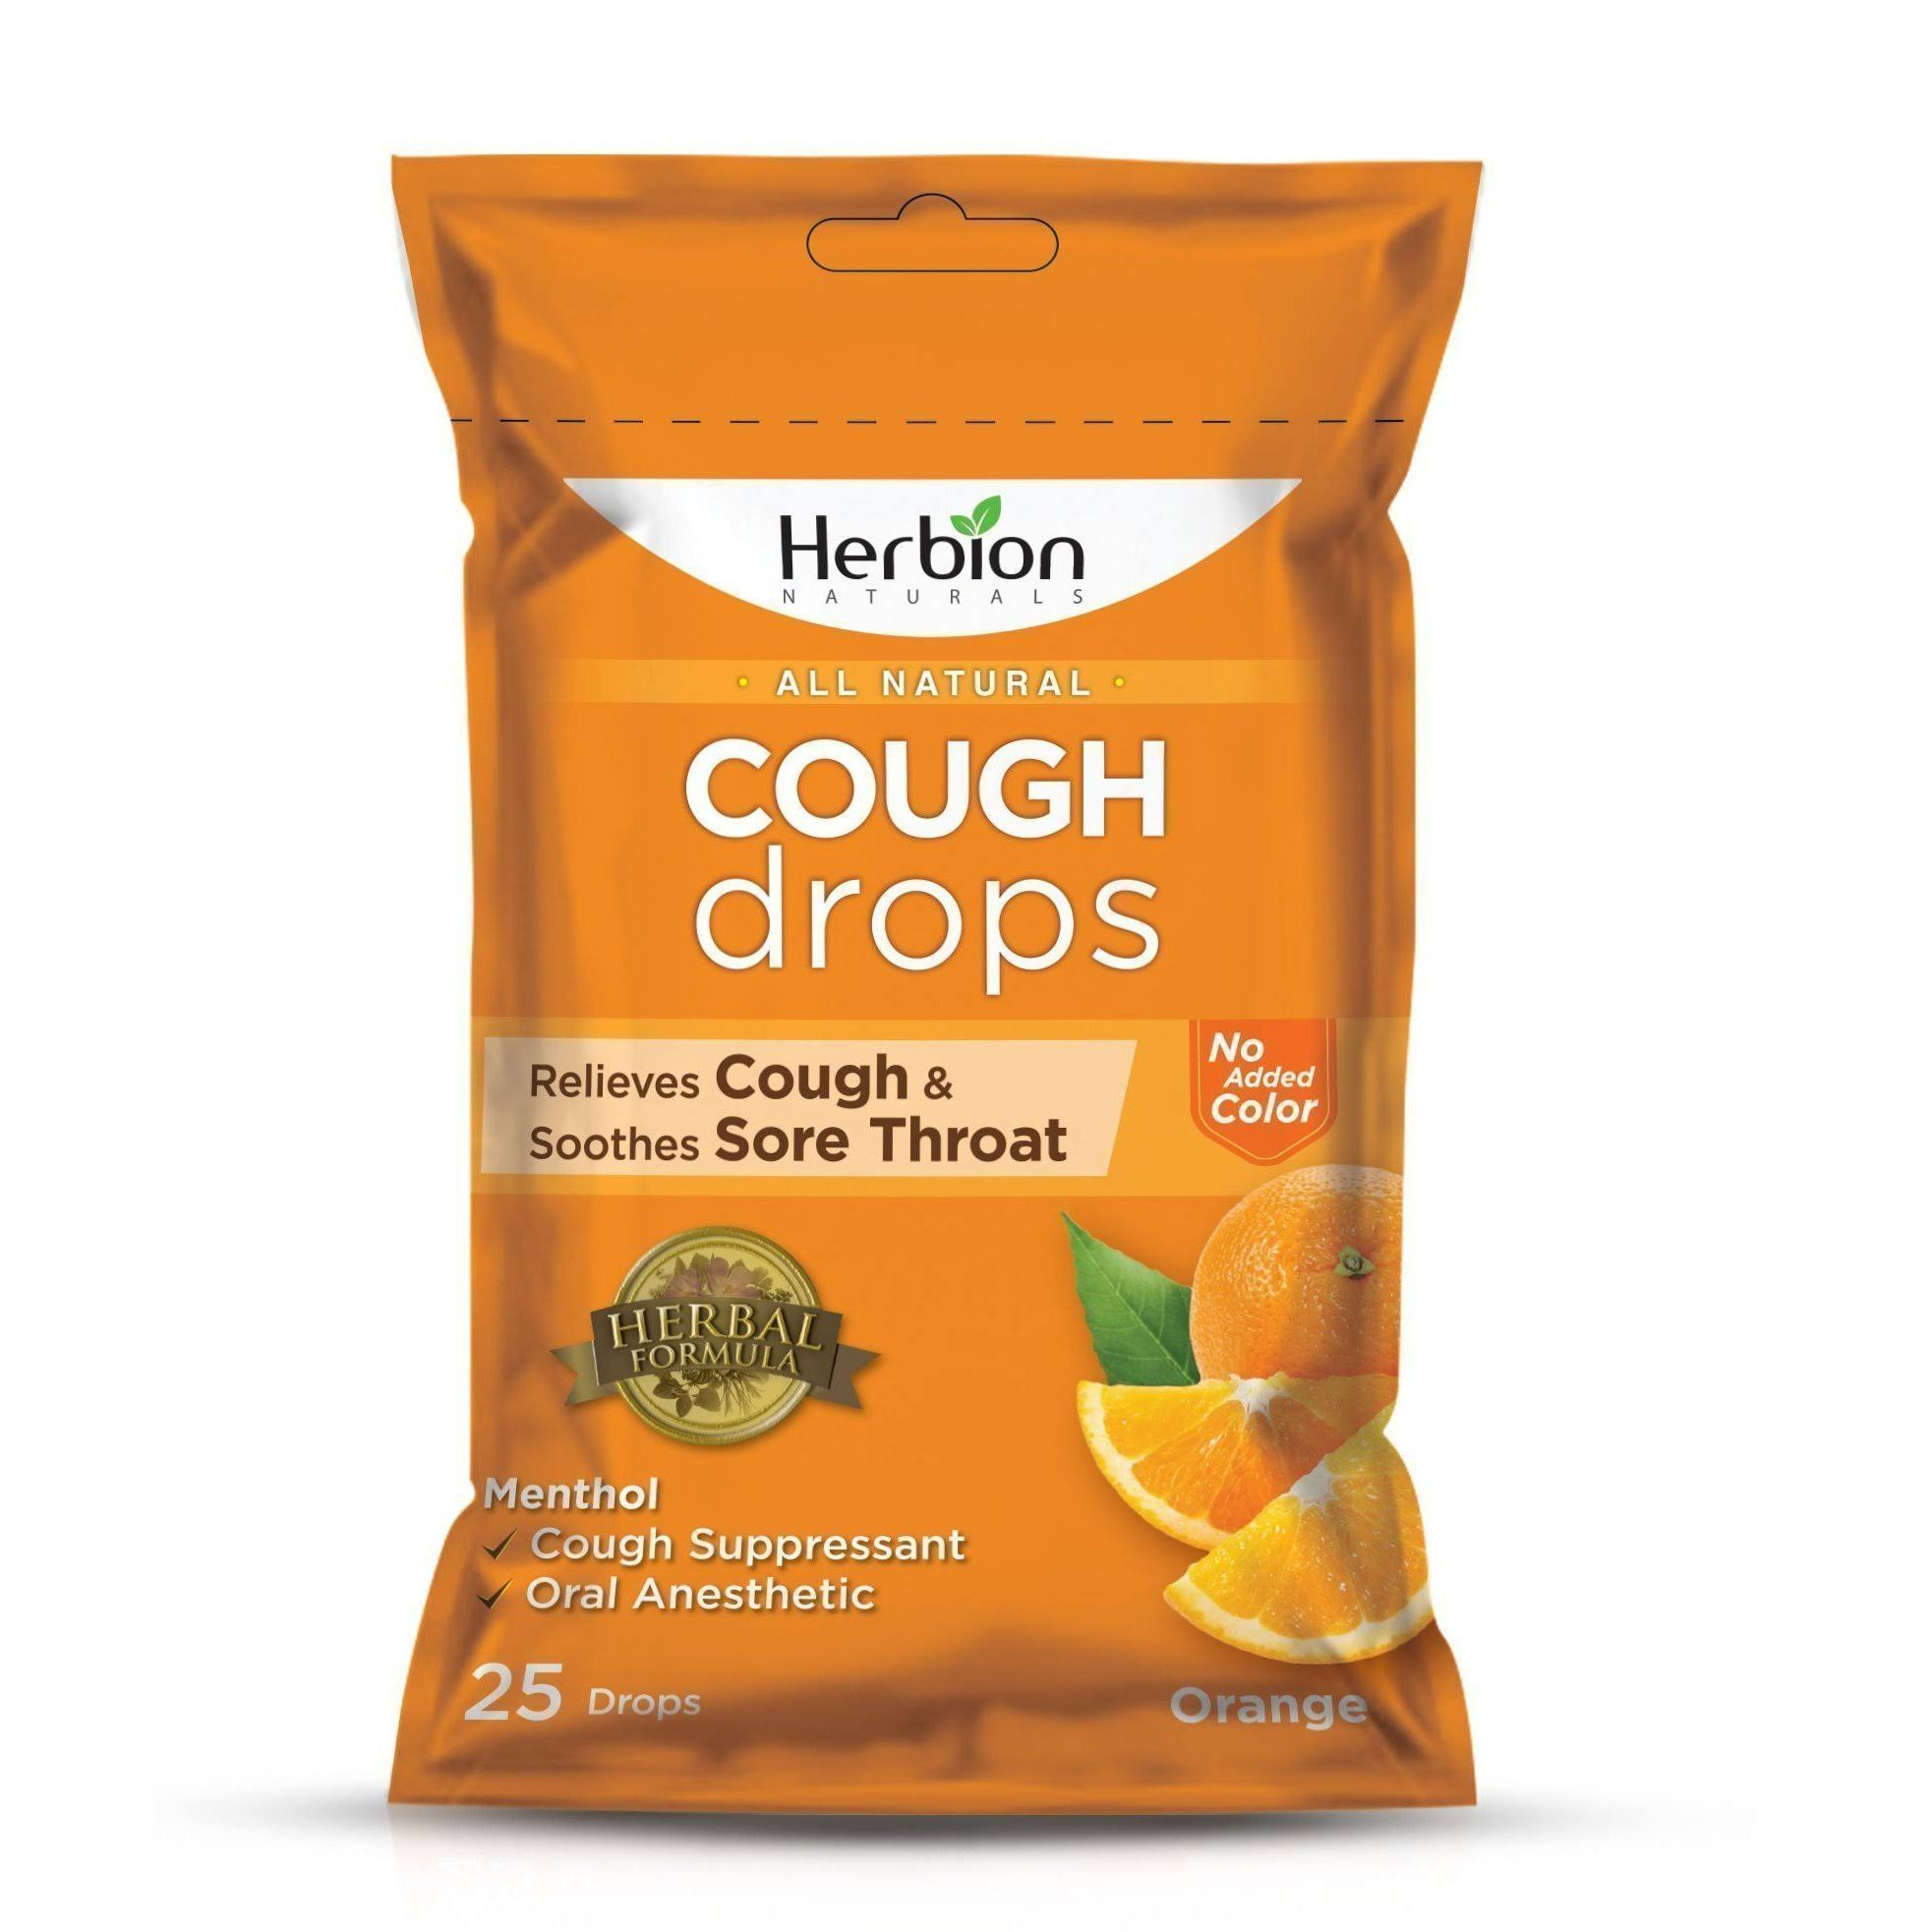 Herbion All Natural Cough Drops - Orange, 25ct